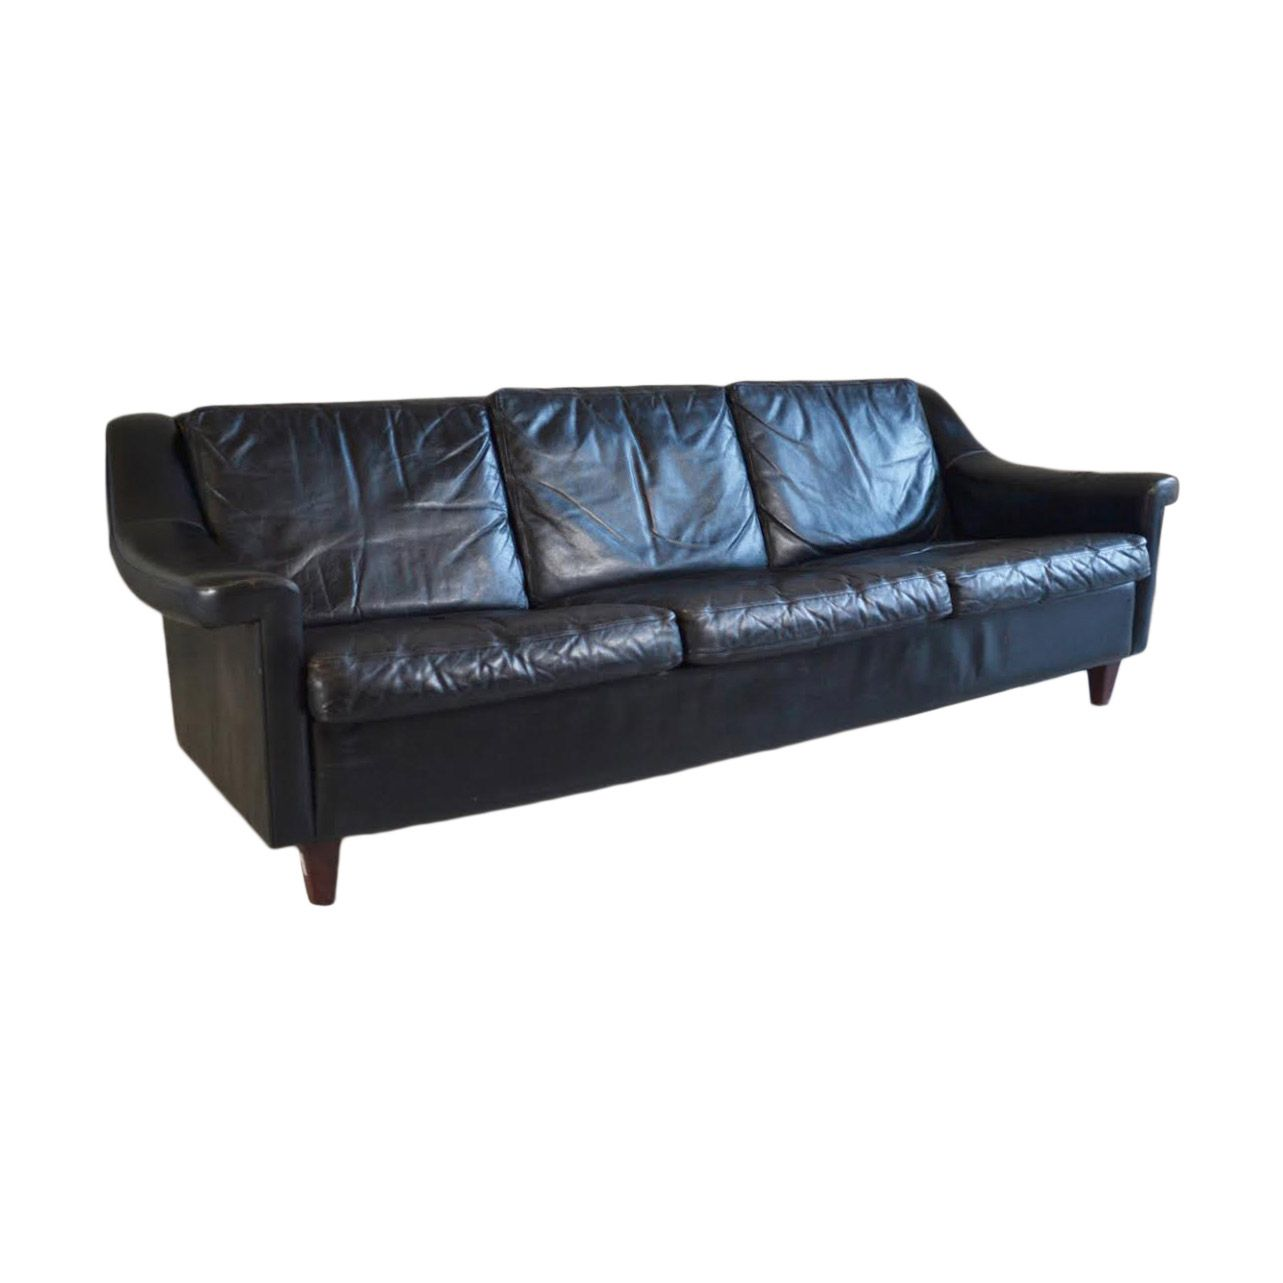 Danish Mid Century 3 Seater Black Leather Sofa with Teak ...